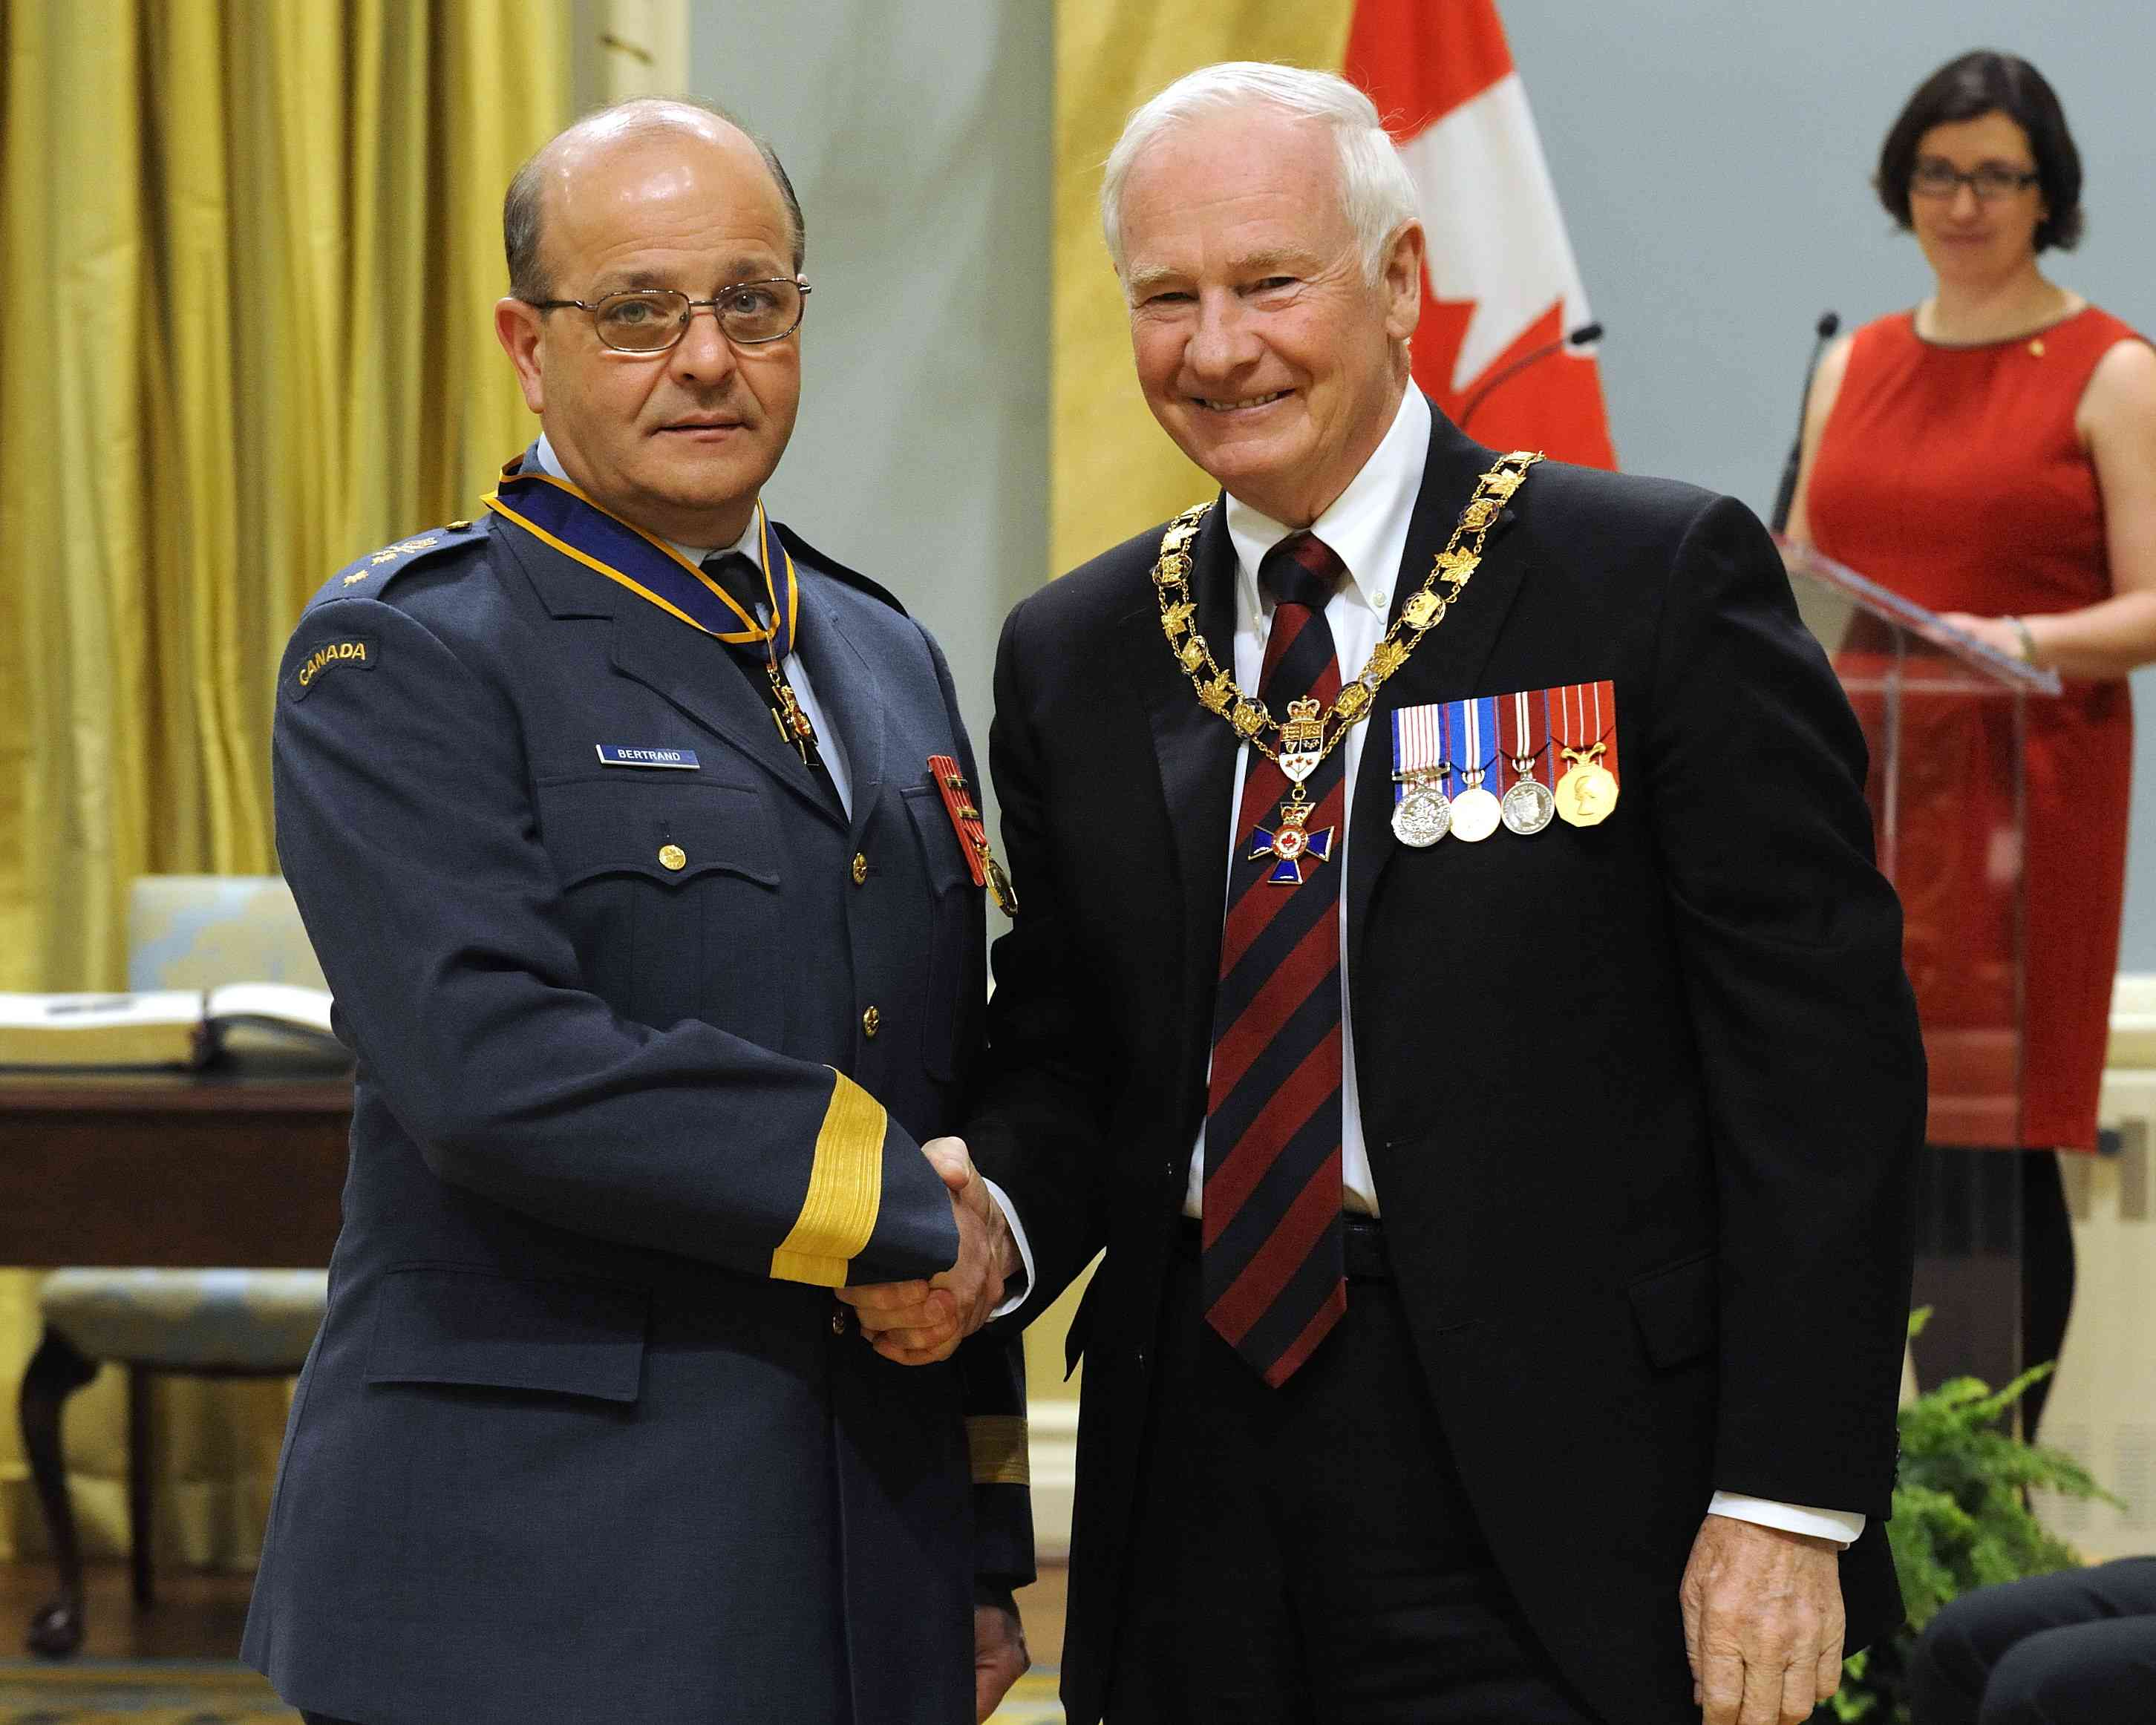 His Excellency presented the Order of Military Merit at the Commander level (C.M.M.) to Major-General Robert Bertrand, C.M.M., C.D., Assistant Deputy Minister (Finance and Corporate Services), Ottawa, Ontario.